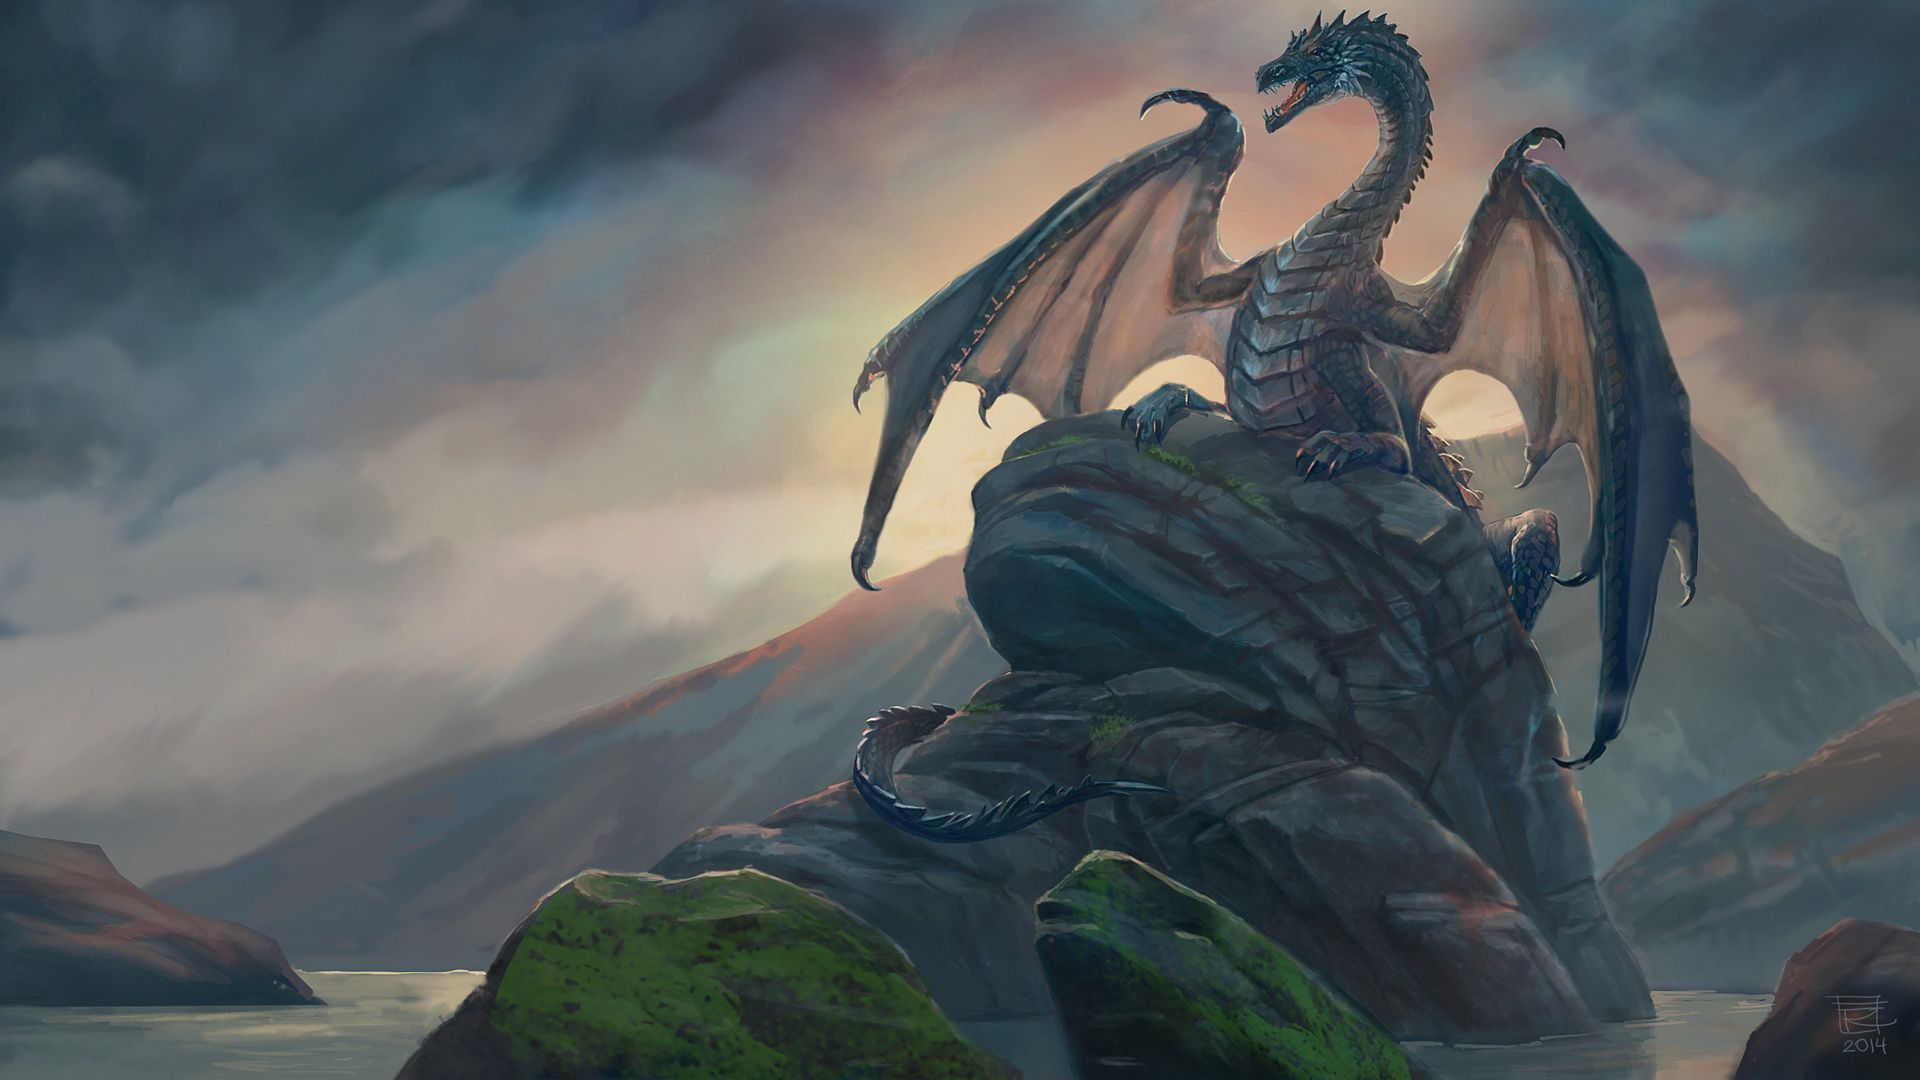 130444 download wallpaper Fantasy, Dragon, Rocks, Art, Stones screensavers and pictures for free